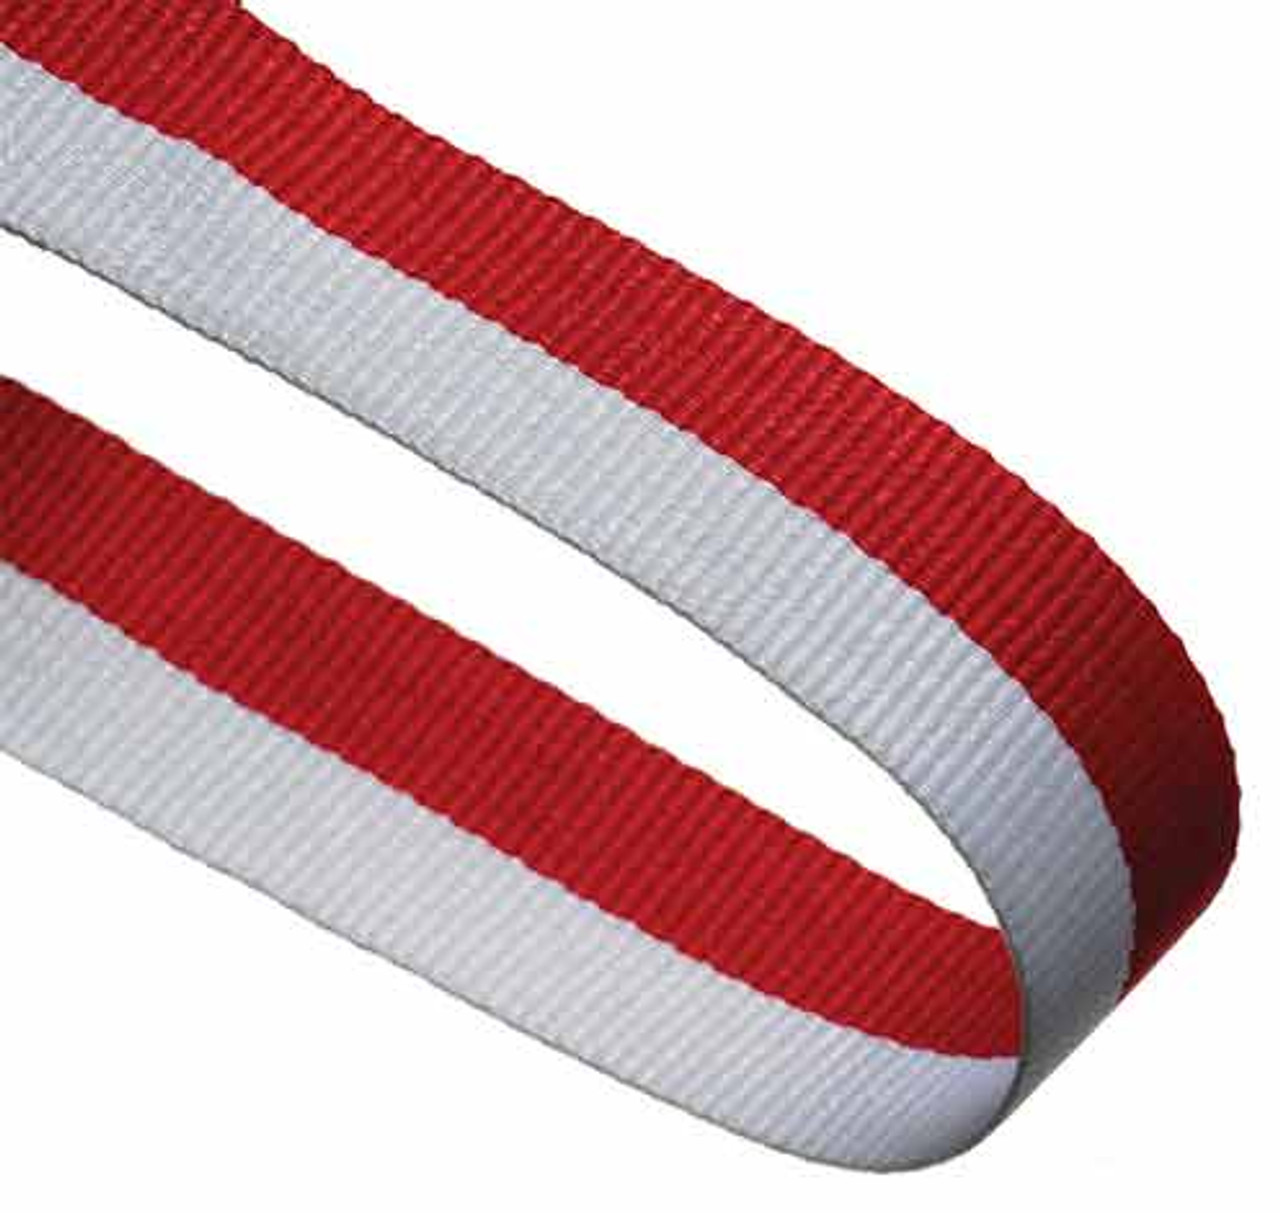 RED & WHITE RIBBON